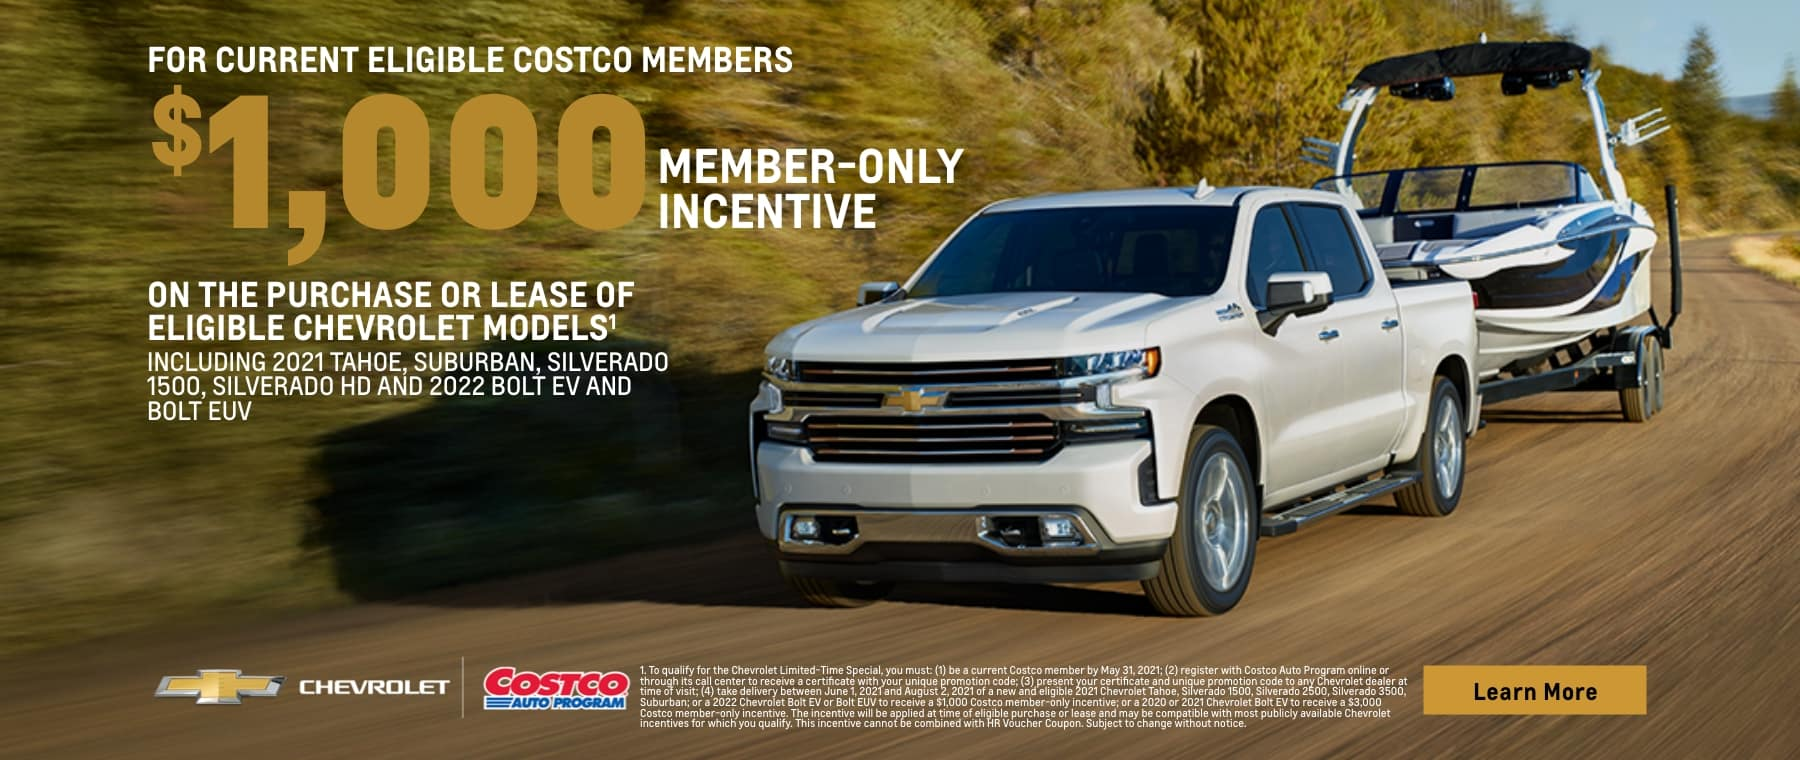 for current eligible costco members $1,000 member-only incentive on the purchase or lease of eligible chevrolet models including 2021 tahoe, suburban, silverado 1500, silverado hd and 2022 bolt ev and bolt euv chevrolet costco eauto program learn more 1. to qualify for the chevrolet limited-time special, you must: (1) be a current costco member by may 31, 2021; (2) register with costco auto program online or through its call center to receive a certificate with your unique promotion code; (3) present your certificate and unique promotion code to any chevrolet dealer at time of visit; (4) take delivery between june 1, 2021 and august 2, 2021 of a new and eligible 2021 chevrolet tahoe, silverado 1500, silverado 2500, silverado 3500, suburban; or a 2022 chevrolet bolt ev or bolt euv to receive a $1,000 costco member-only incentive; or a 2020 or 2021 chevrolet bolt ev to receive a $3,000 costco member-only incentive. the incentive will be applied at time of eligible purchase or lease and may be compatible with most publicly available chevrolet incentives for which you qualify. this incentive cannot be combined with hr voucher coupon. subject to change without notice.